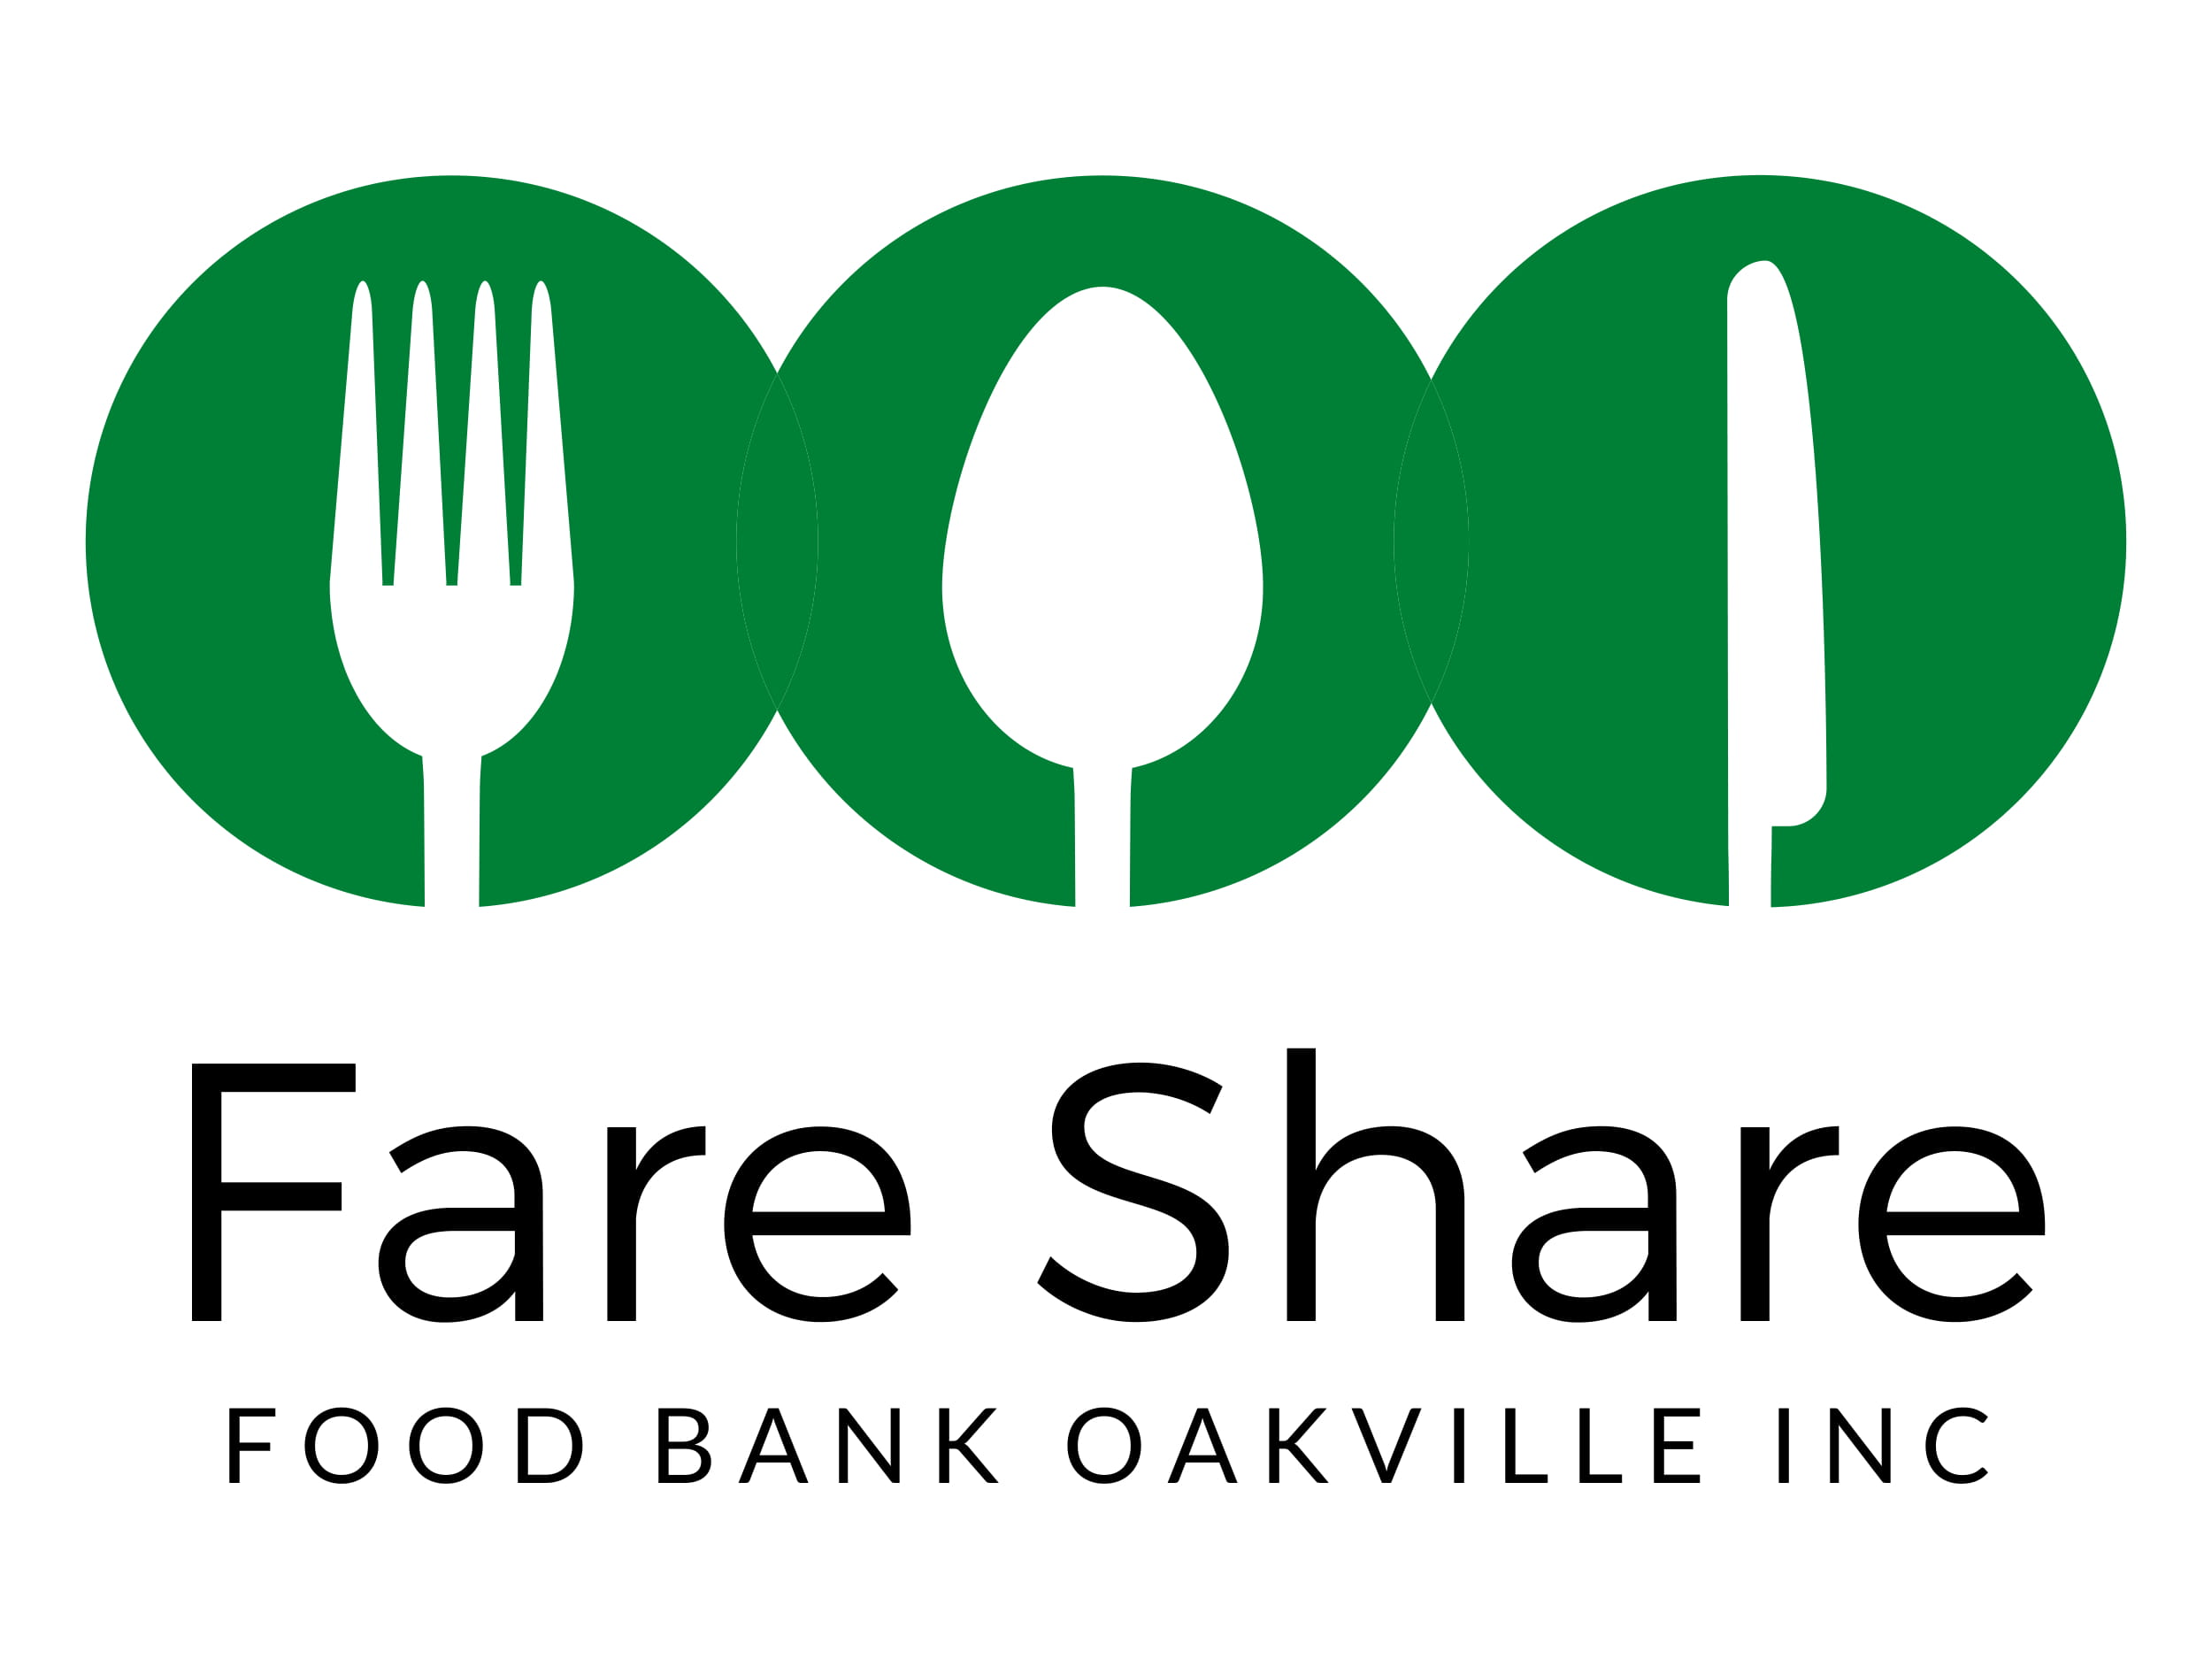 Fare Share Food Bank Oakville